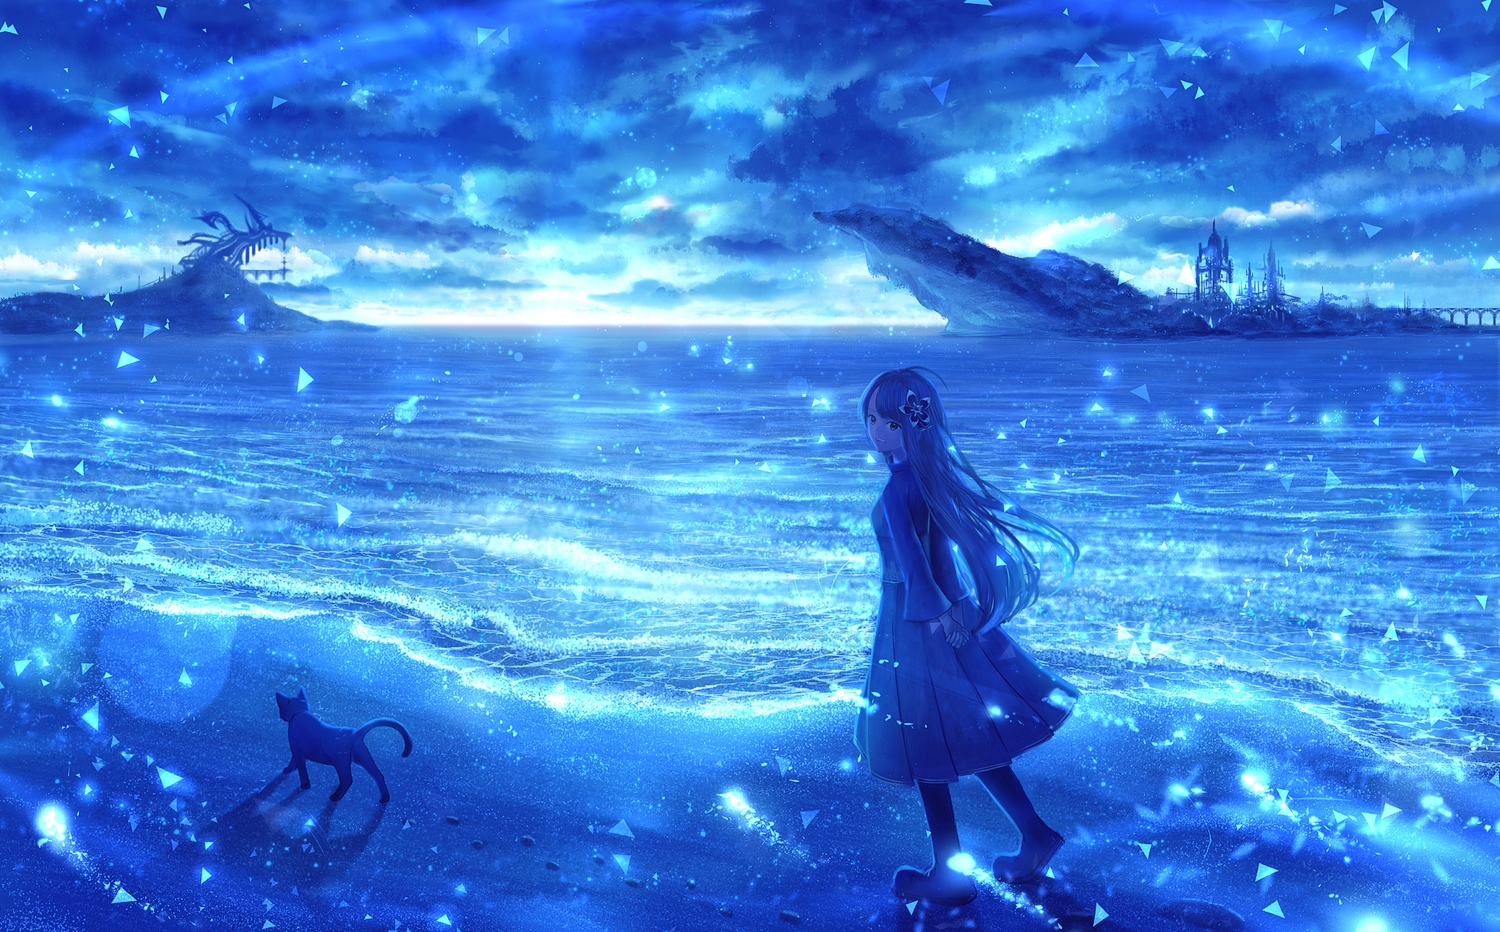 animal blue bou_nin cat clouds long_hair original polychromatic scenic sky water